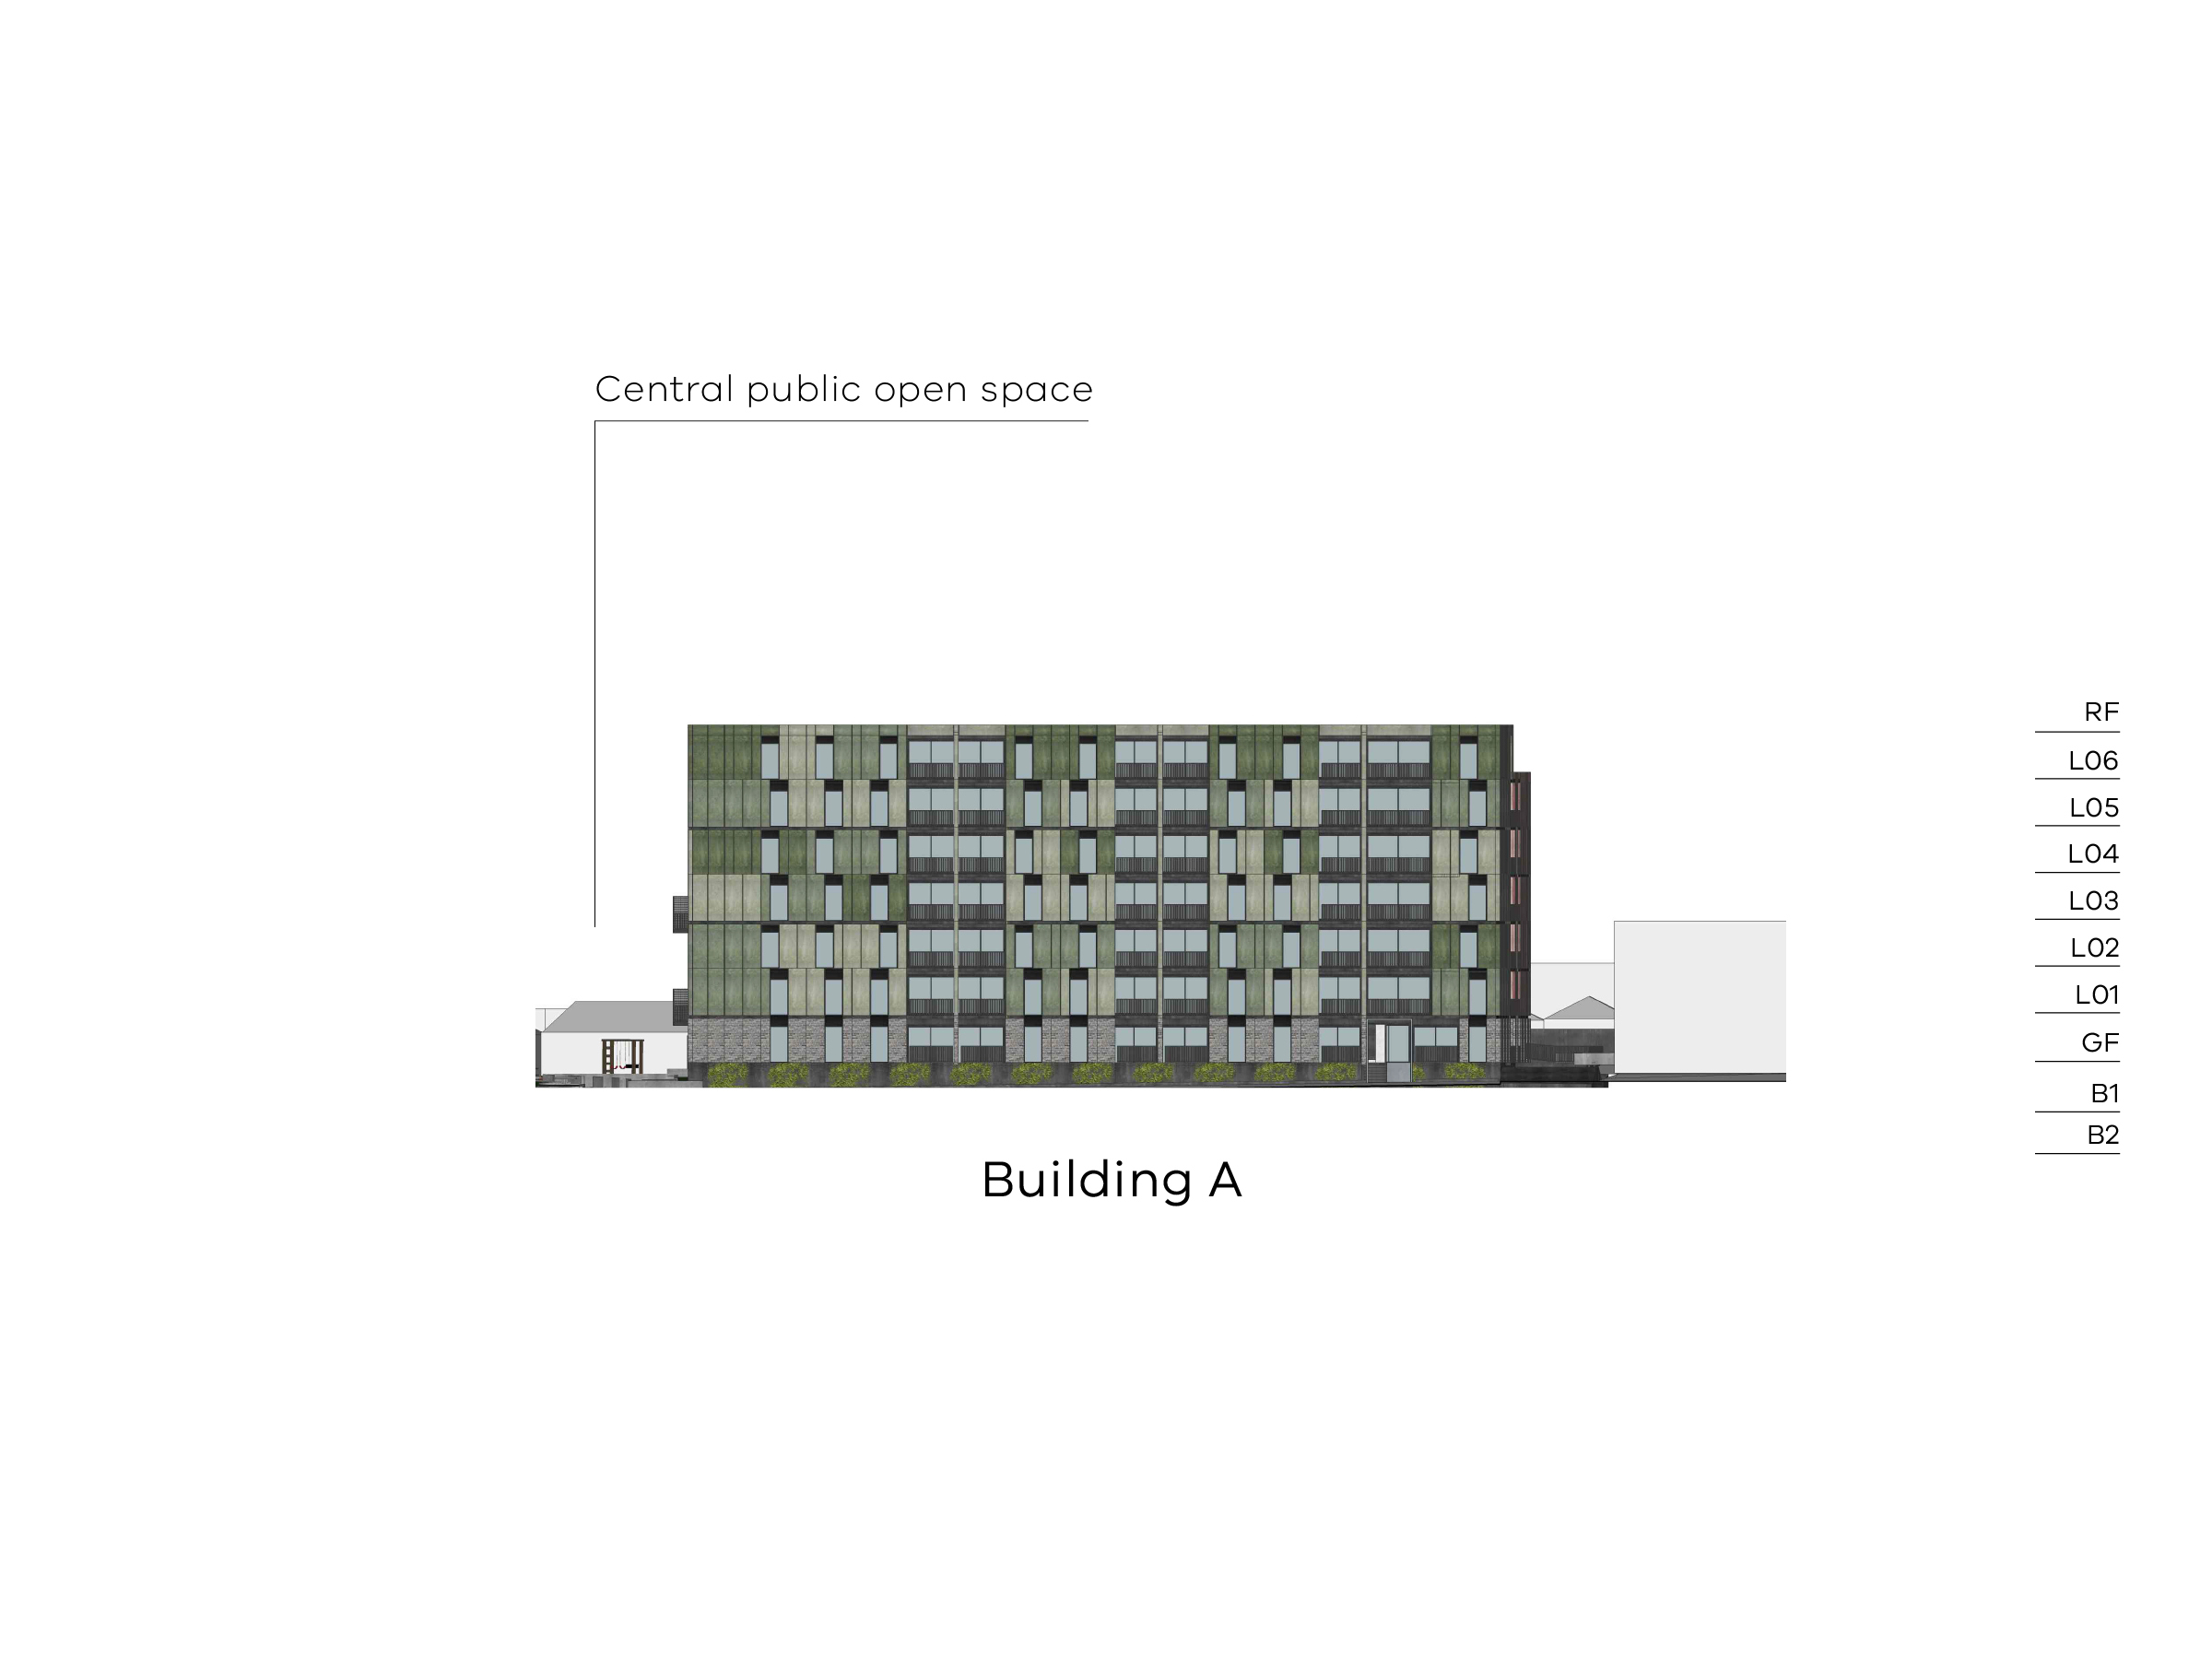 Diagram showing the heights of building A as seen from Bangs Street. Building A has 2 basement levels, a ground floor, Level 1-6 and a flat roof.